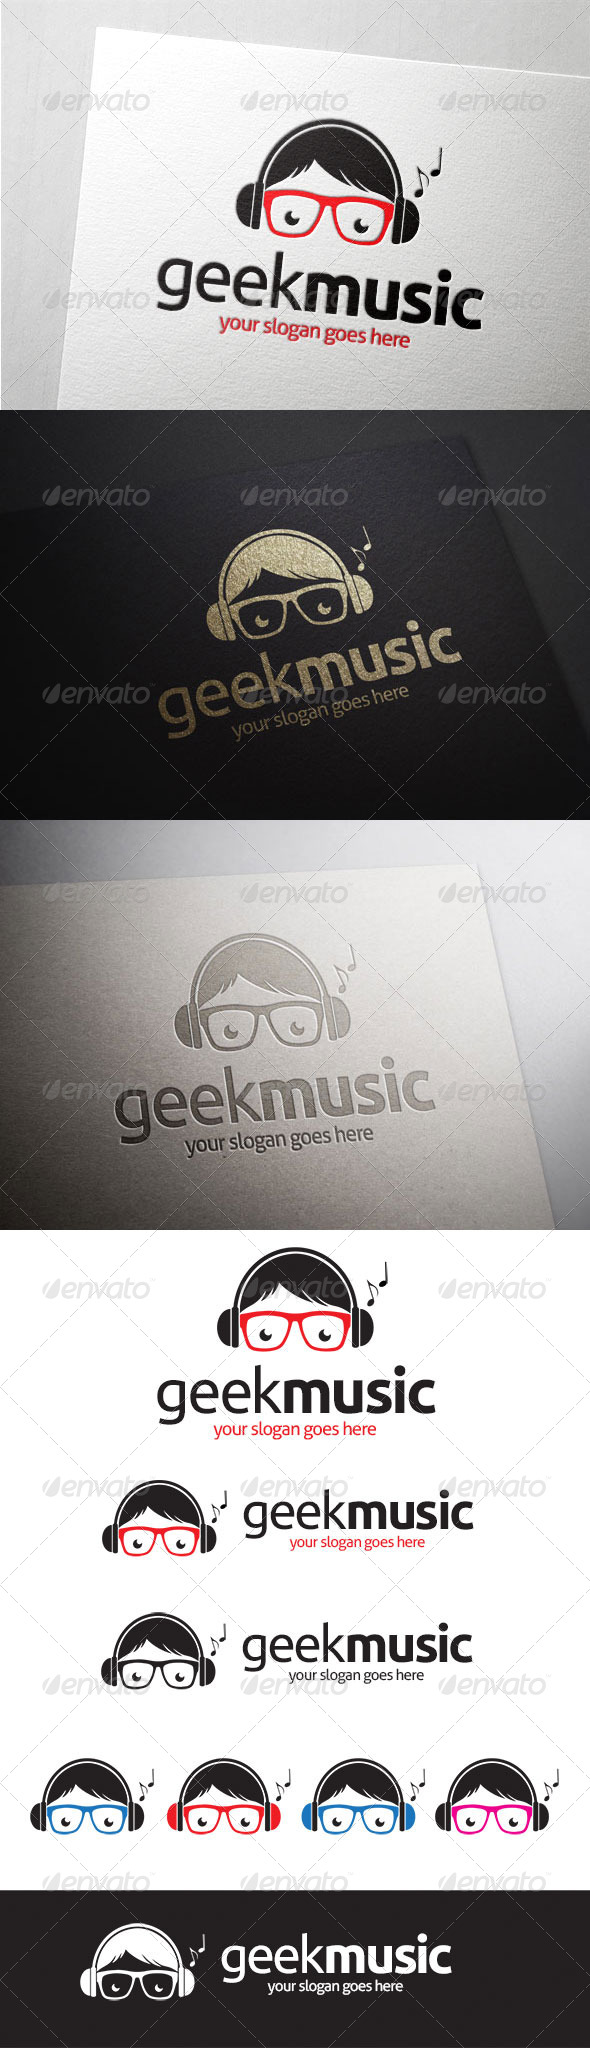 GraphicRiver Geek Music Logo 7003755